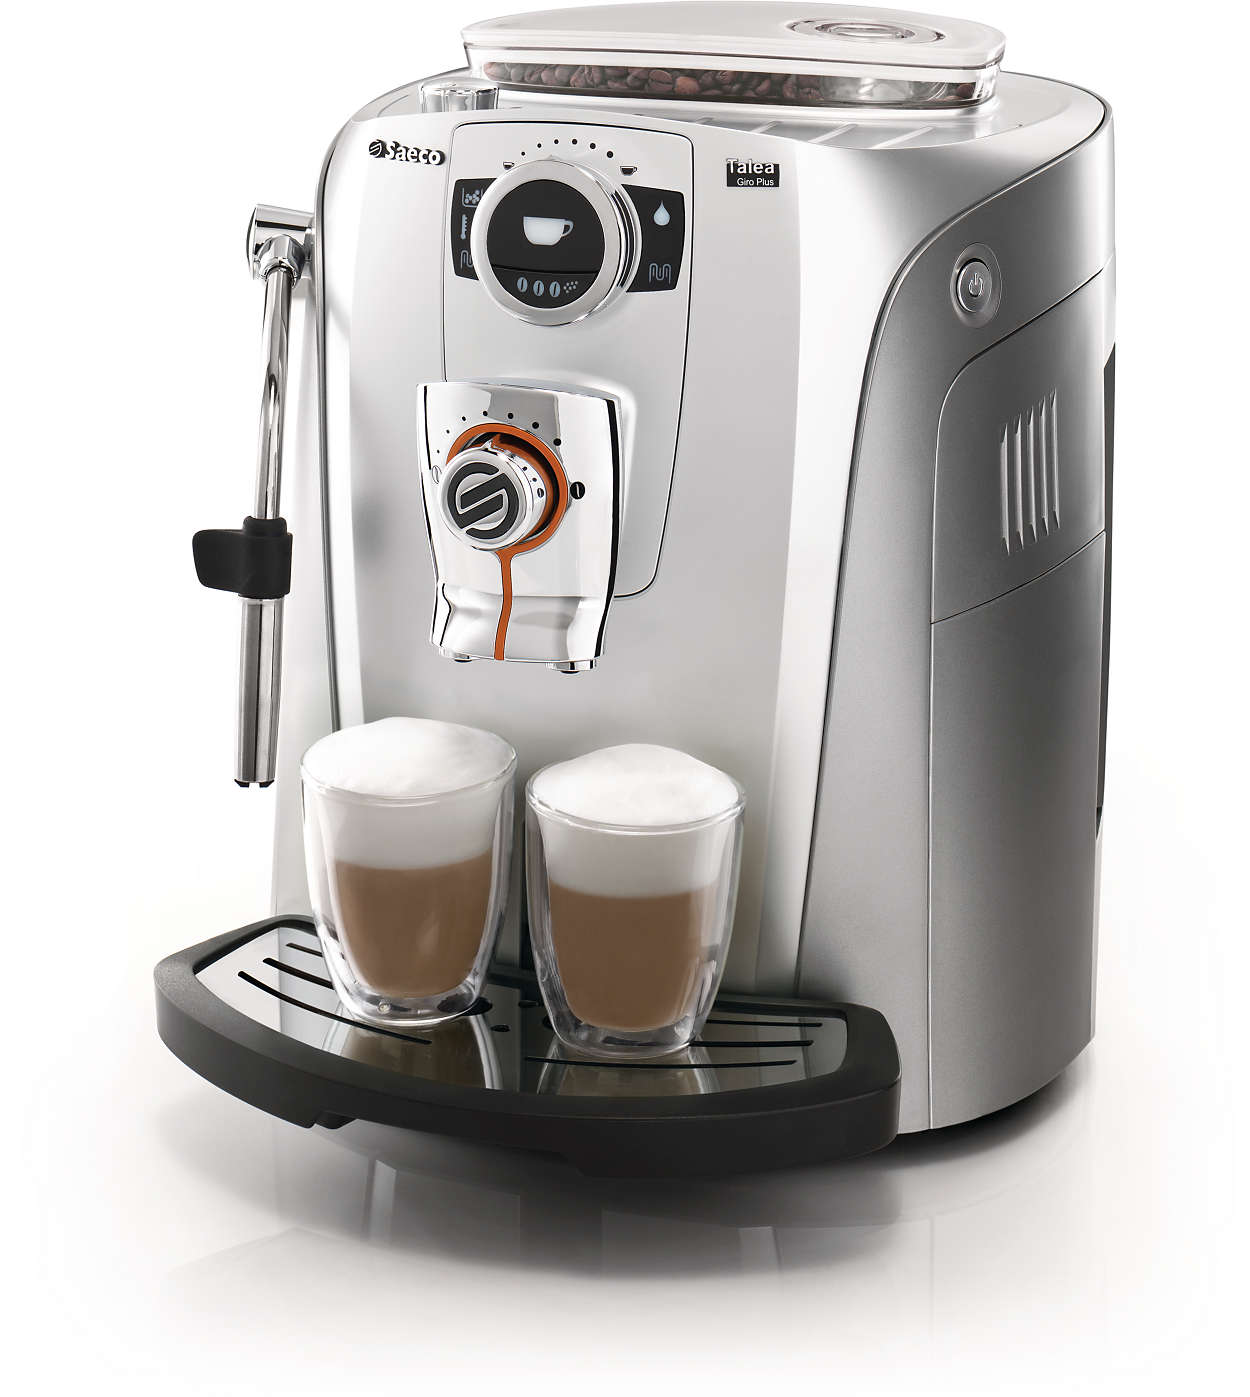 Talea machine espresso super automatique ri9822 01 saeco - Machine a cafe a grain saeco ...